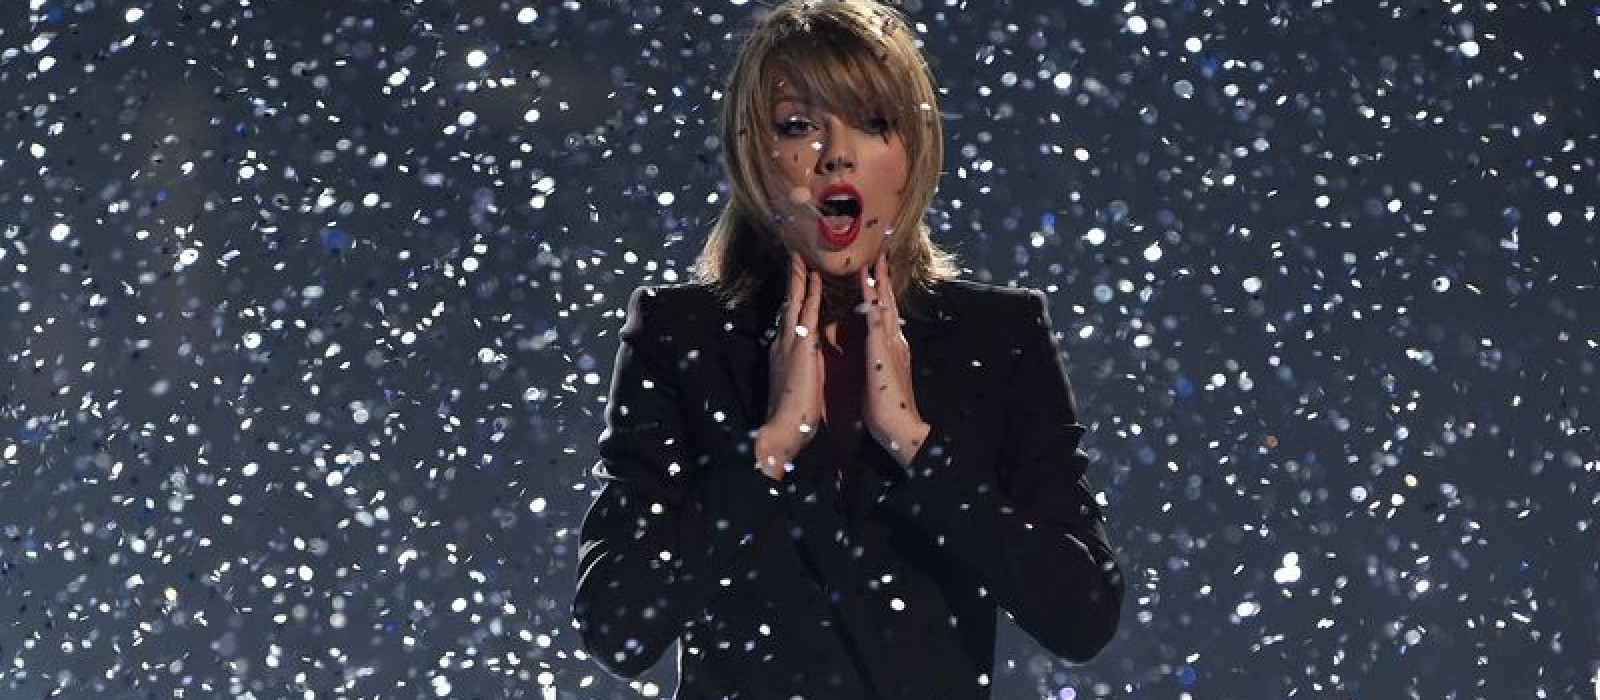 Apple reportedly trying to pay artists like Taylor Swift for Beats Music exclusives